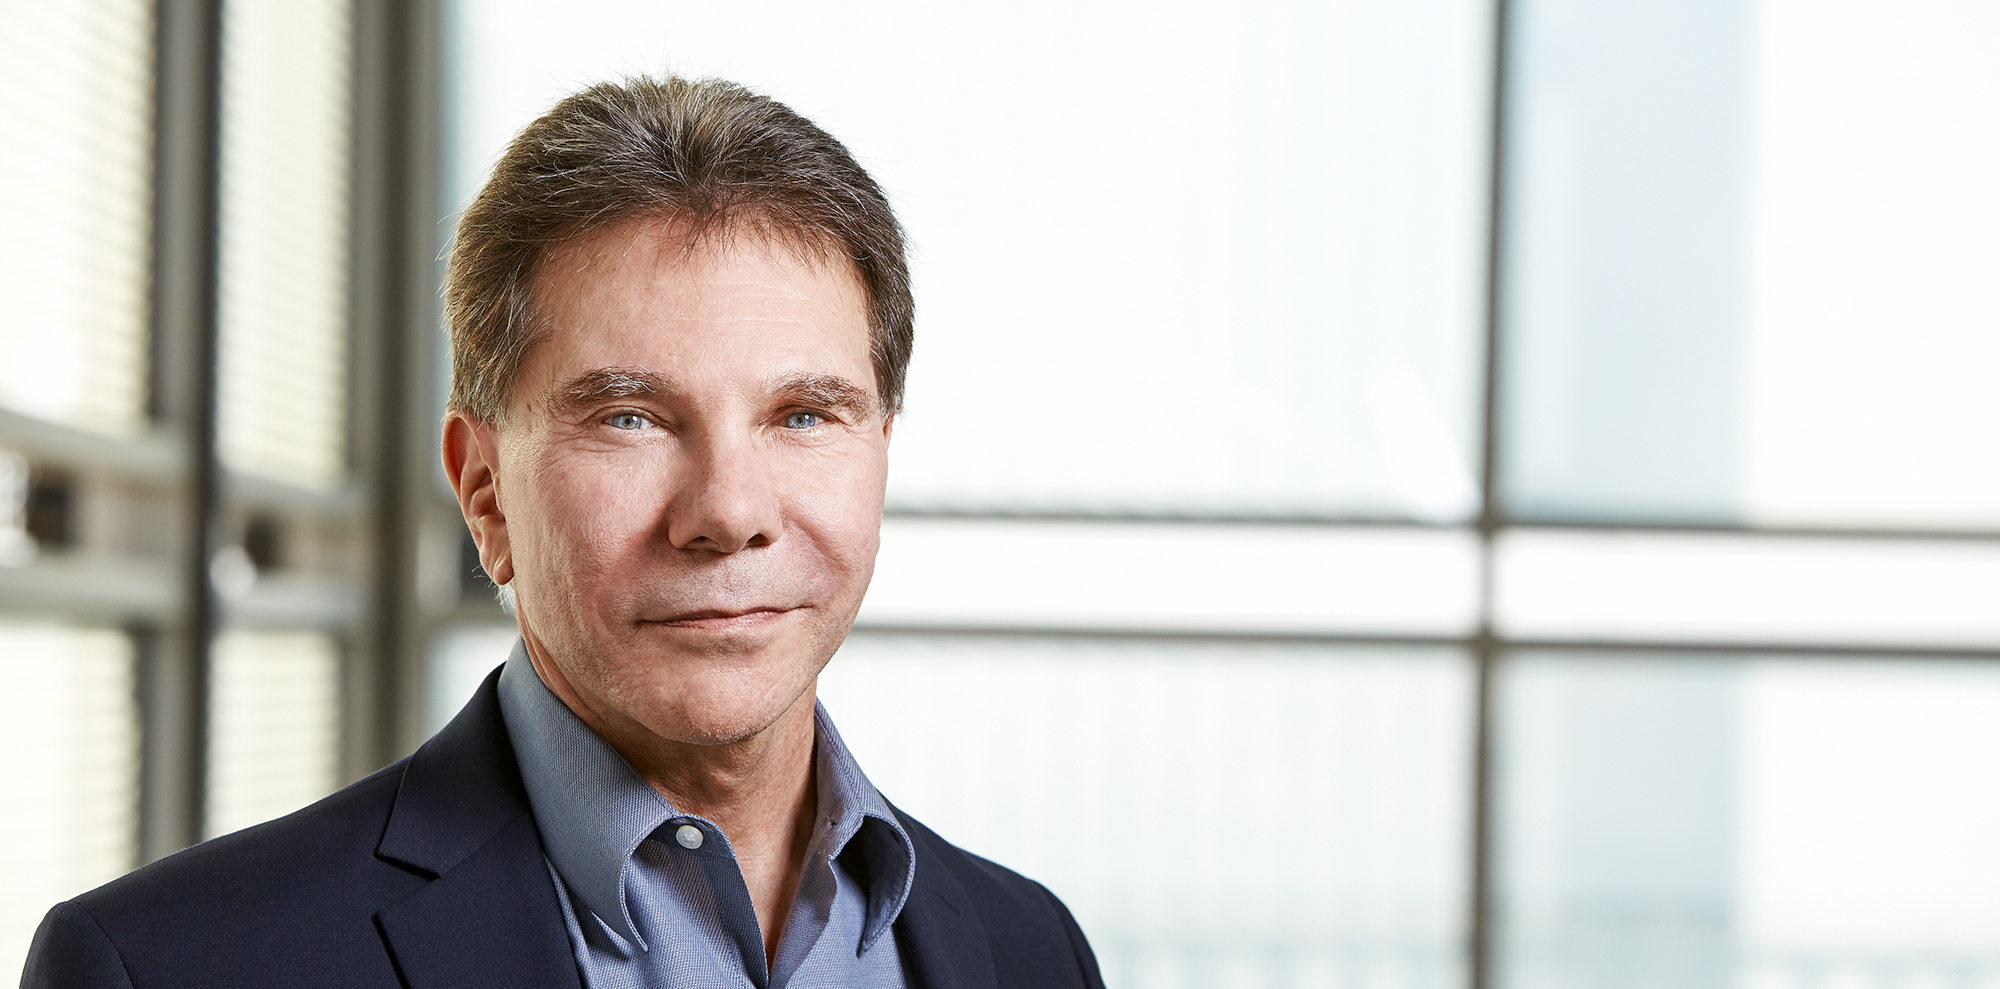 The 6 Principles of Persuasion by Robert Cialdini